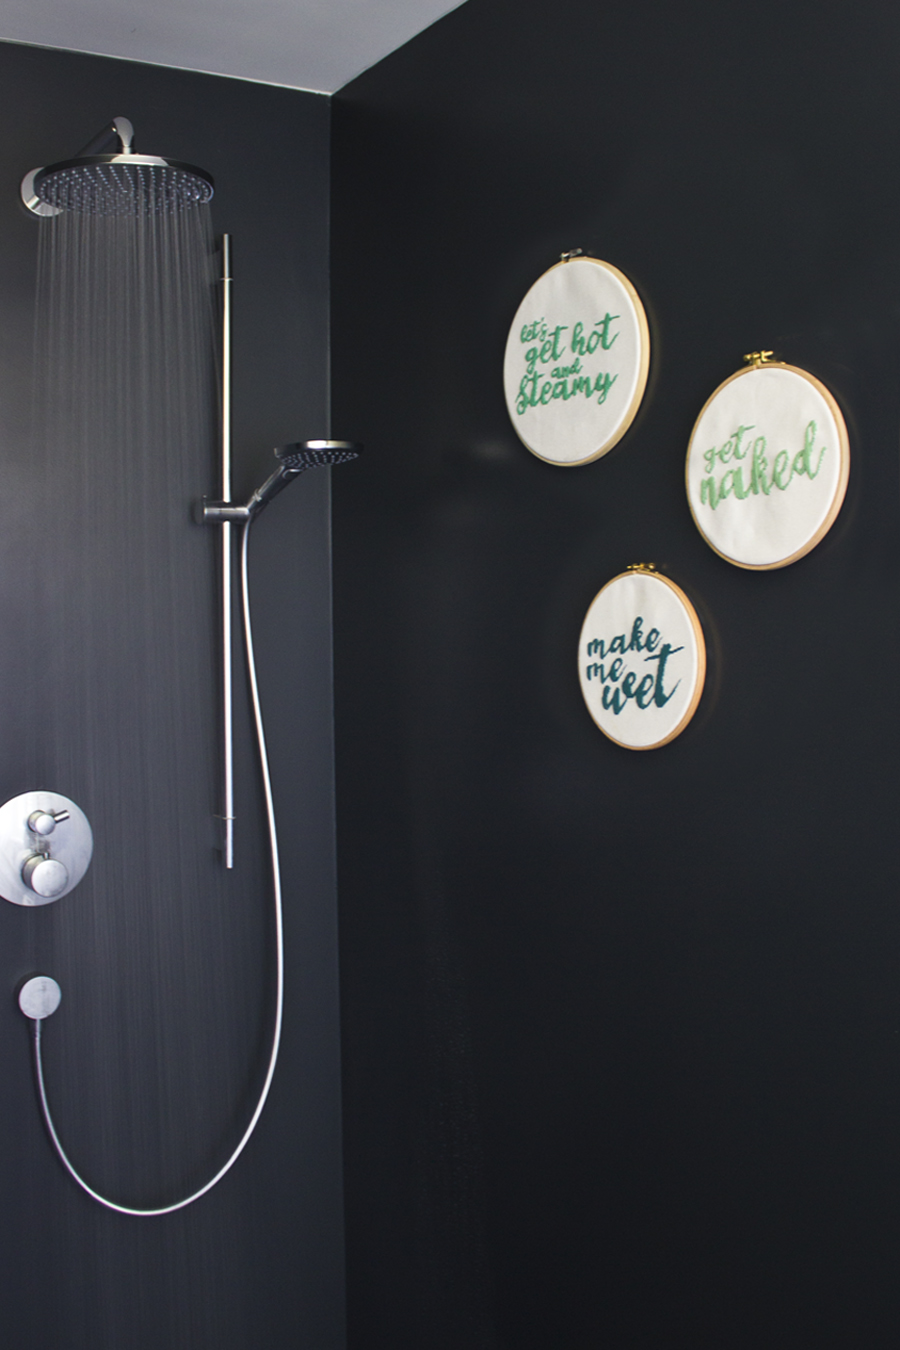 get-naked-embroidery-diy-bathroom-decor-ideas  LOOK WHAT I MADE